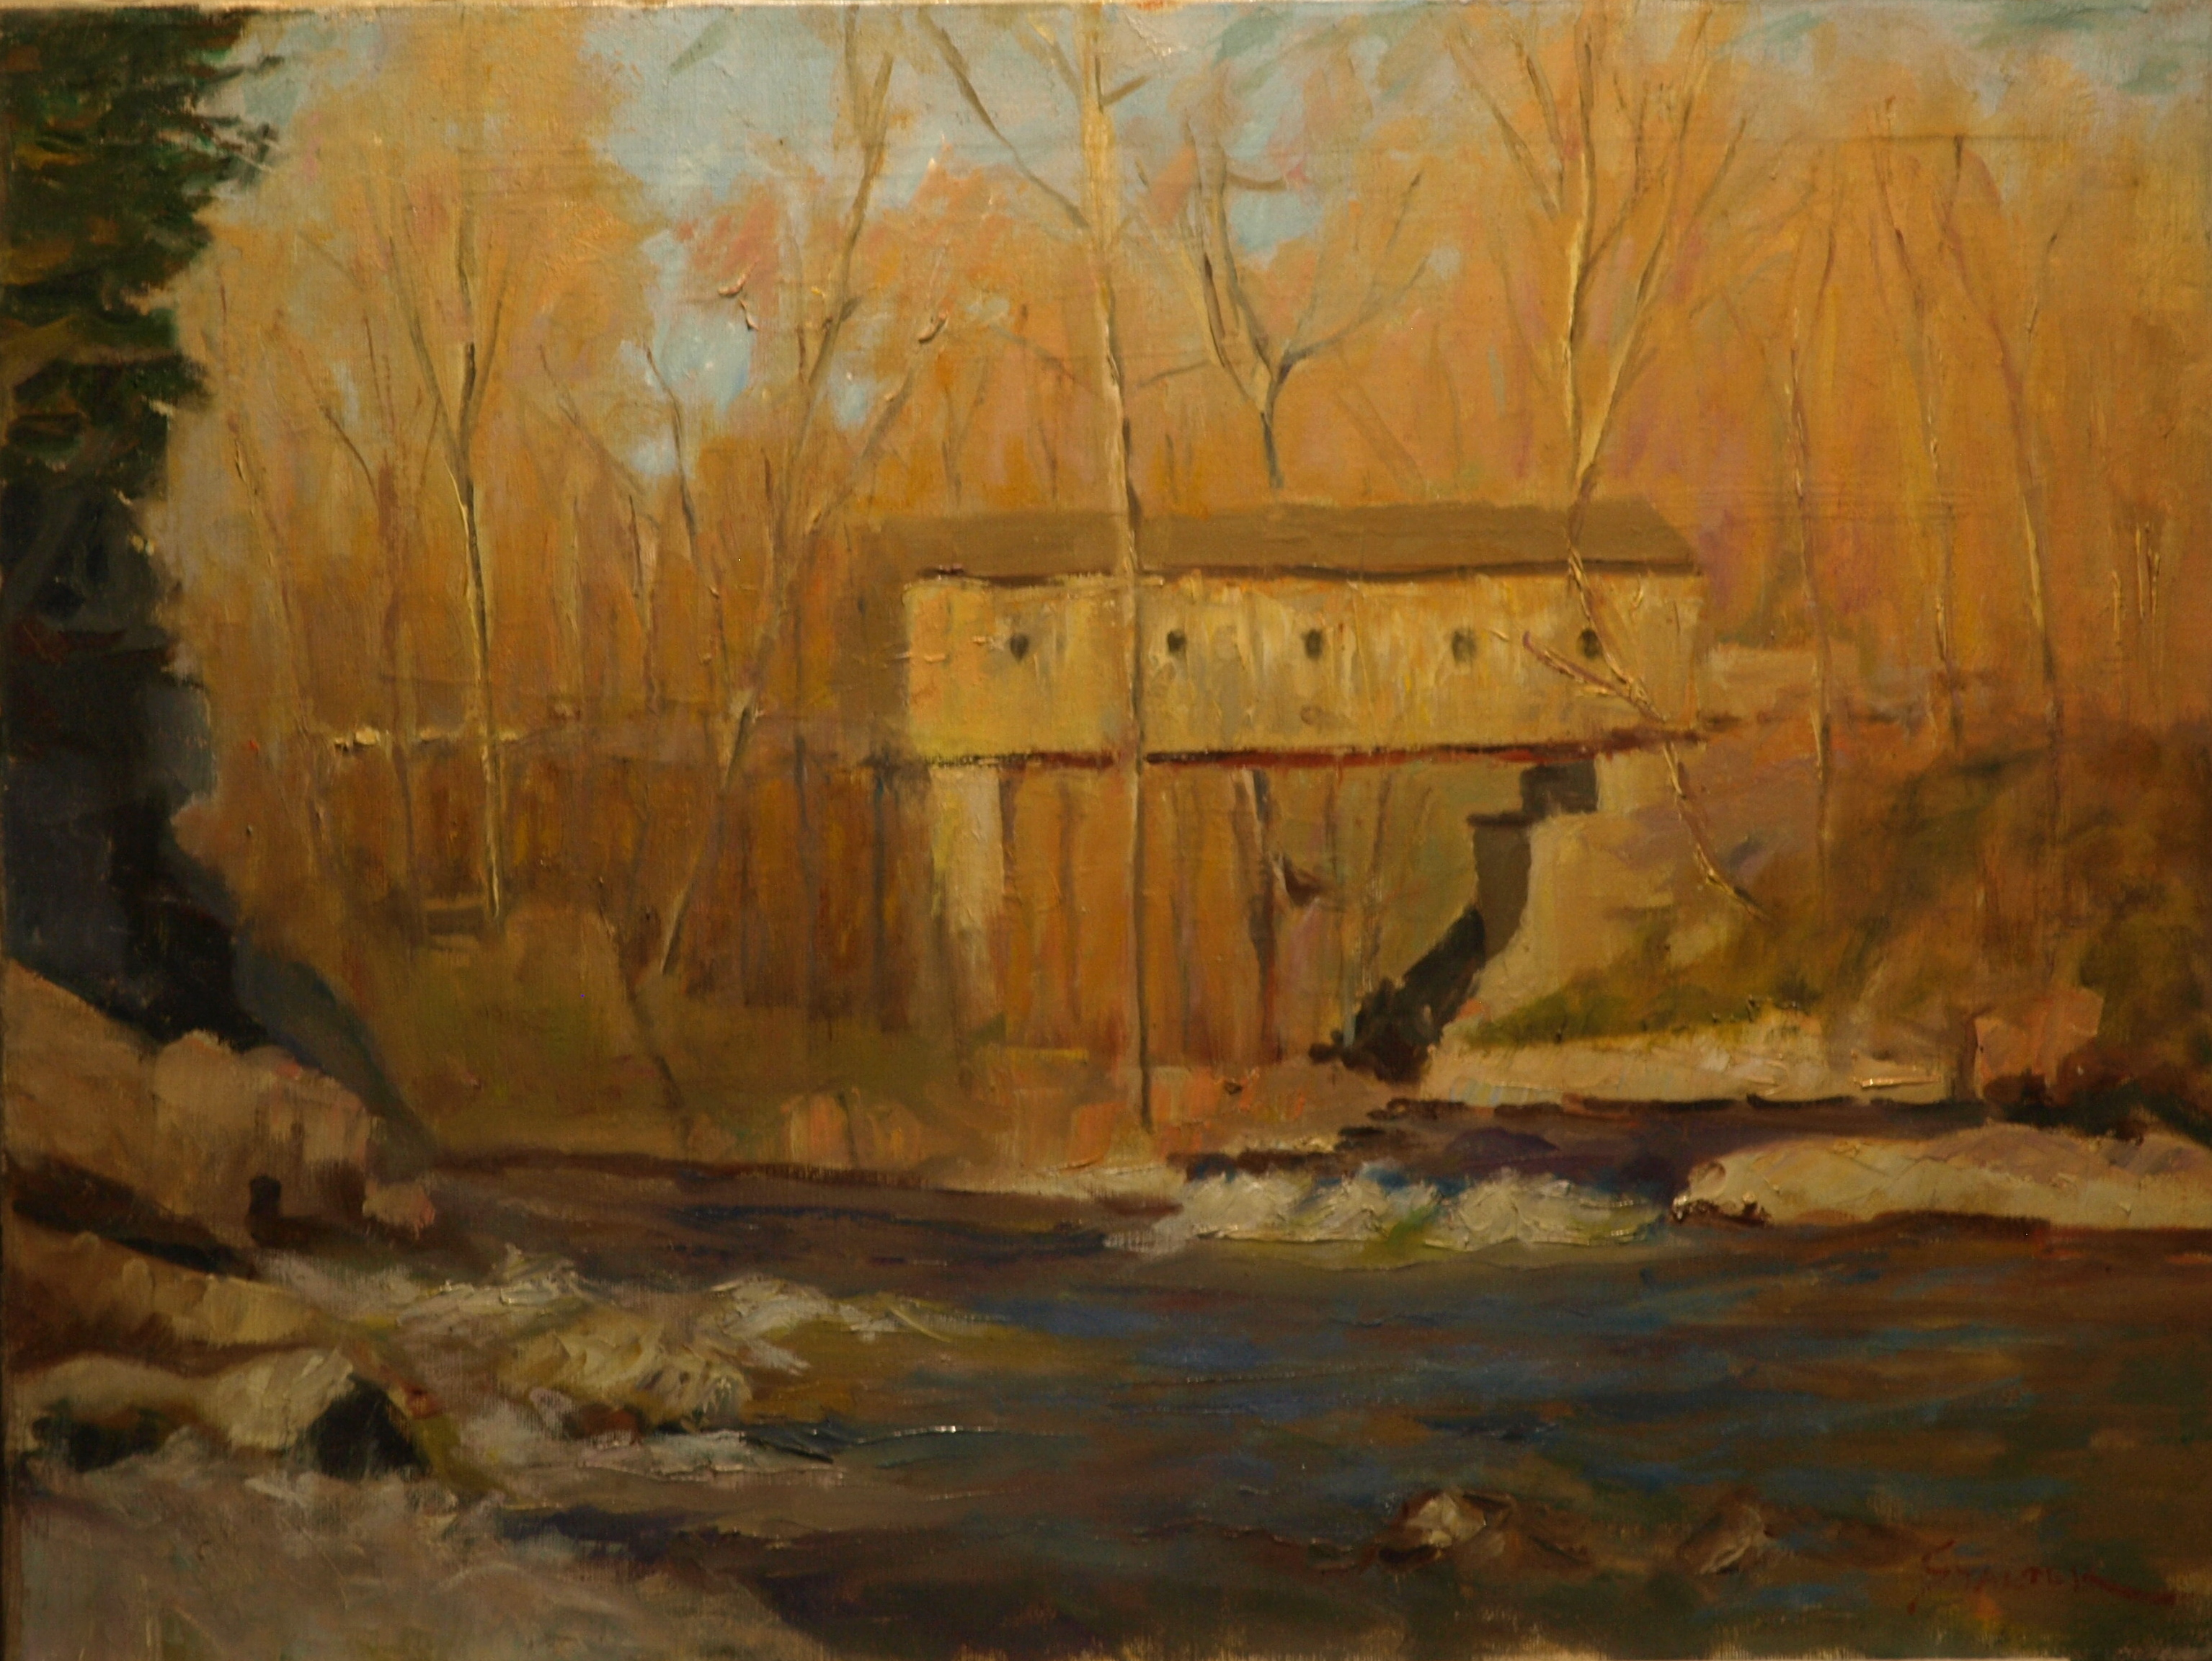 Rapids below Bulls Bridge, Oil on Canvas, 18 x 24 Inches, by Richard Stalter, $650